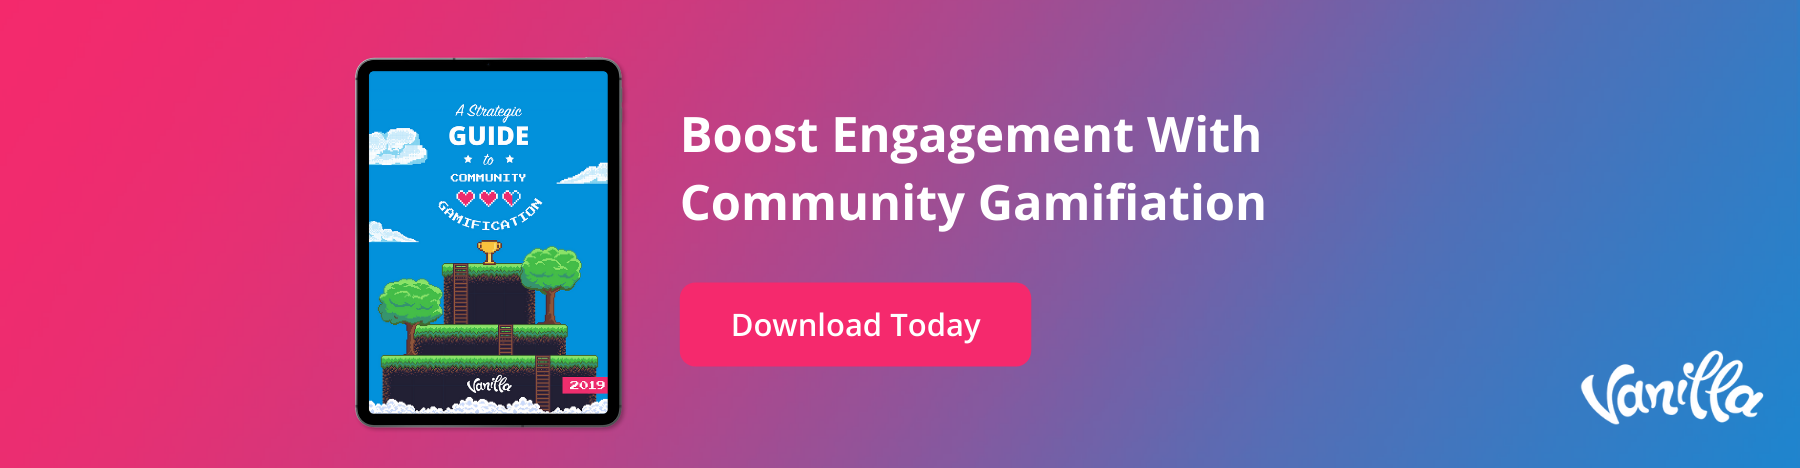 Strategic Community Gamification2